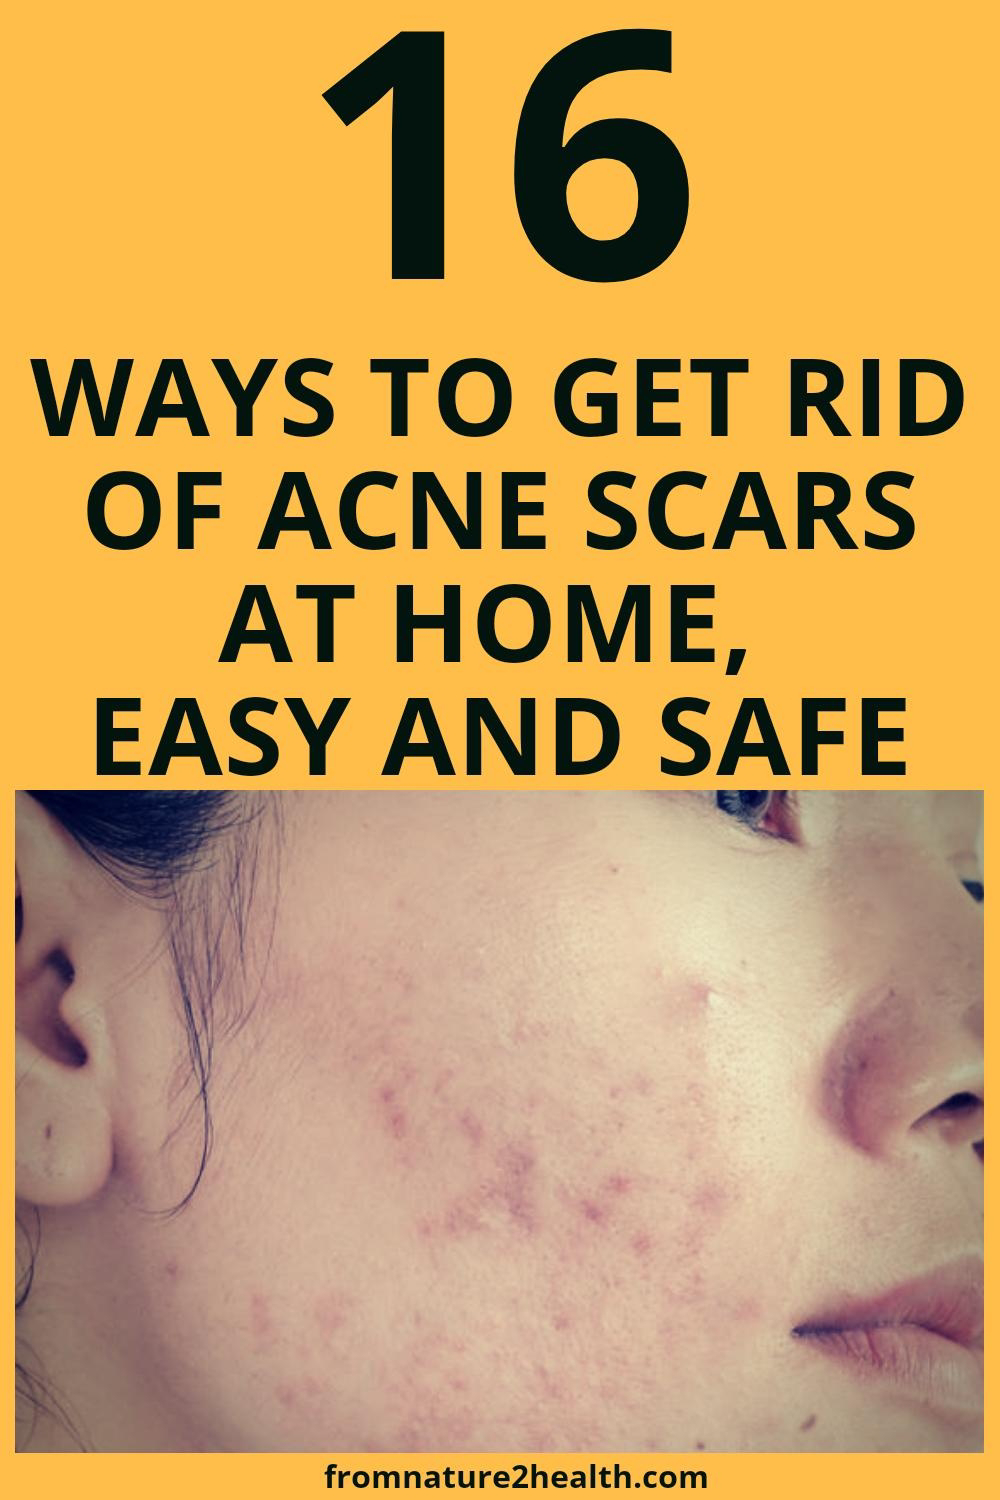 16 Ways to Get Rid of Acne Scars at Home, Easy and Safe